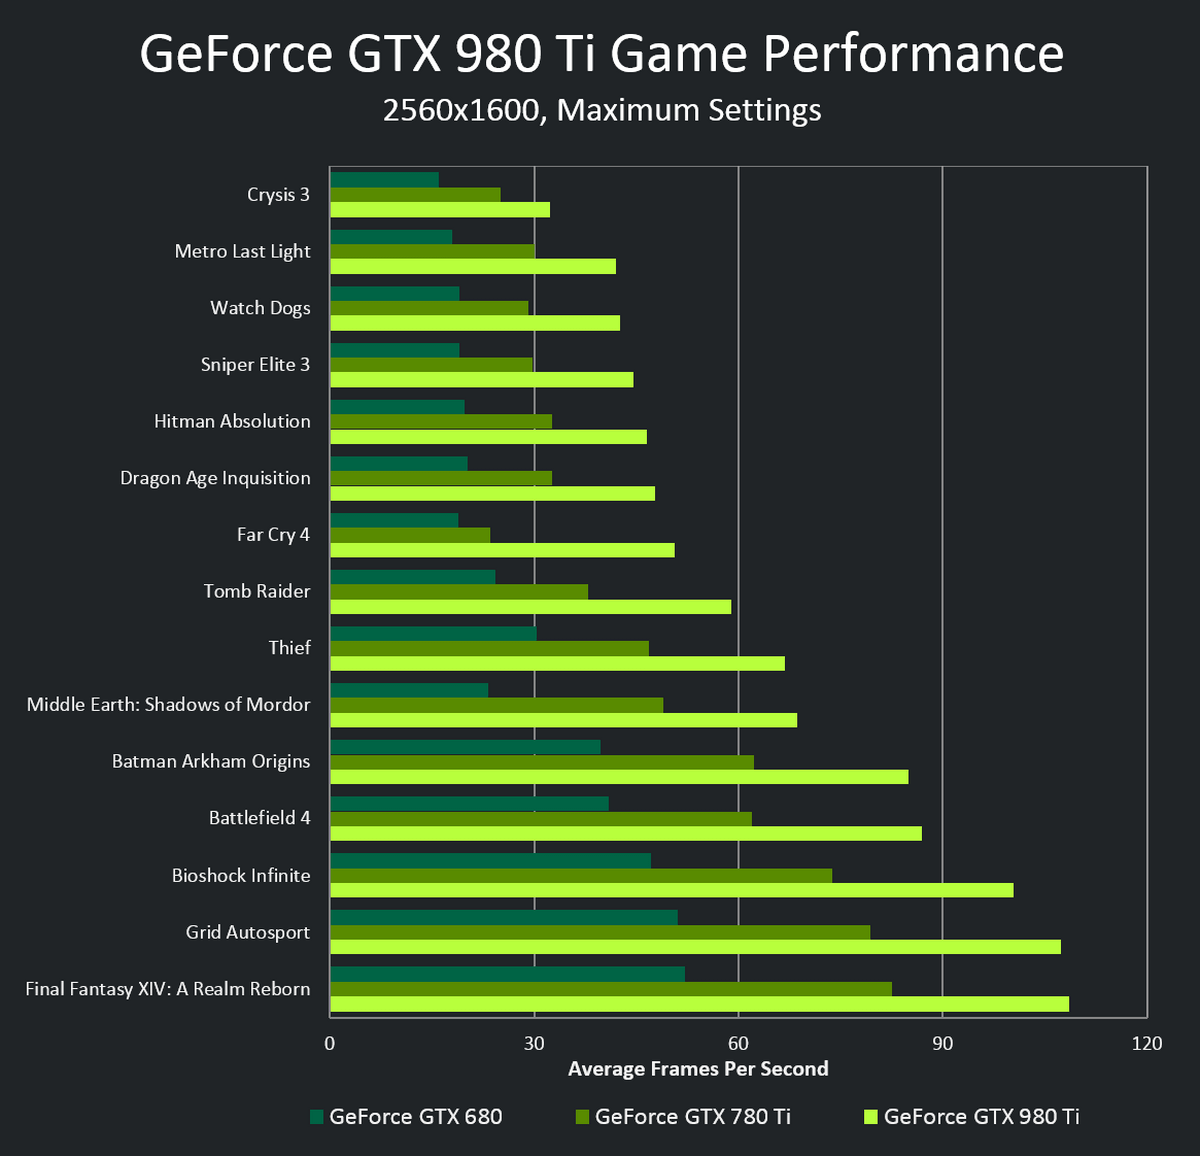 geforce-gtx-980-ti-pdp-performance-chart